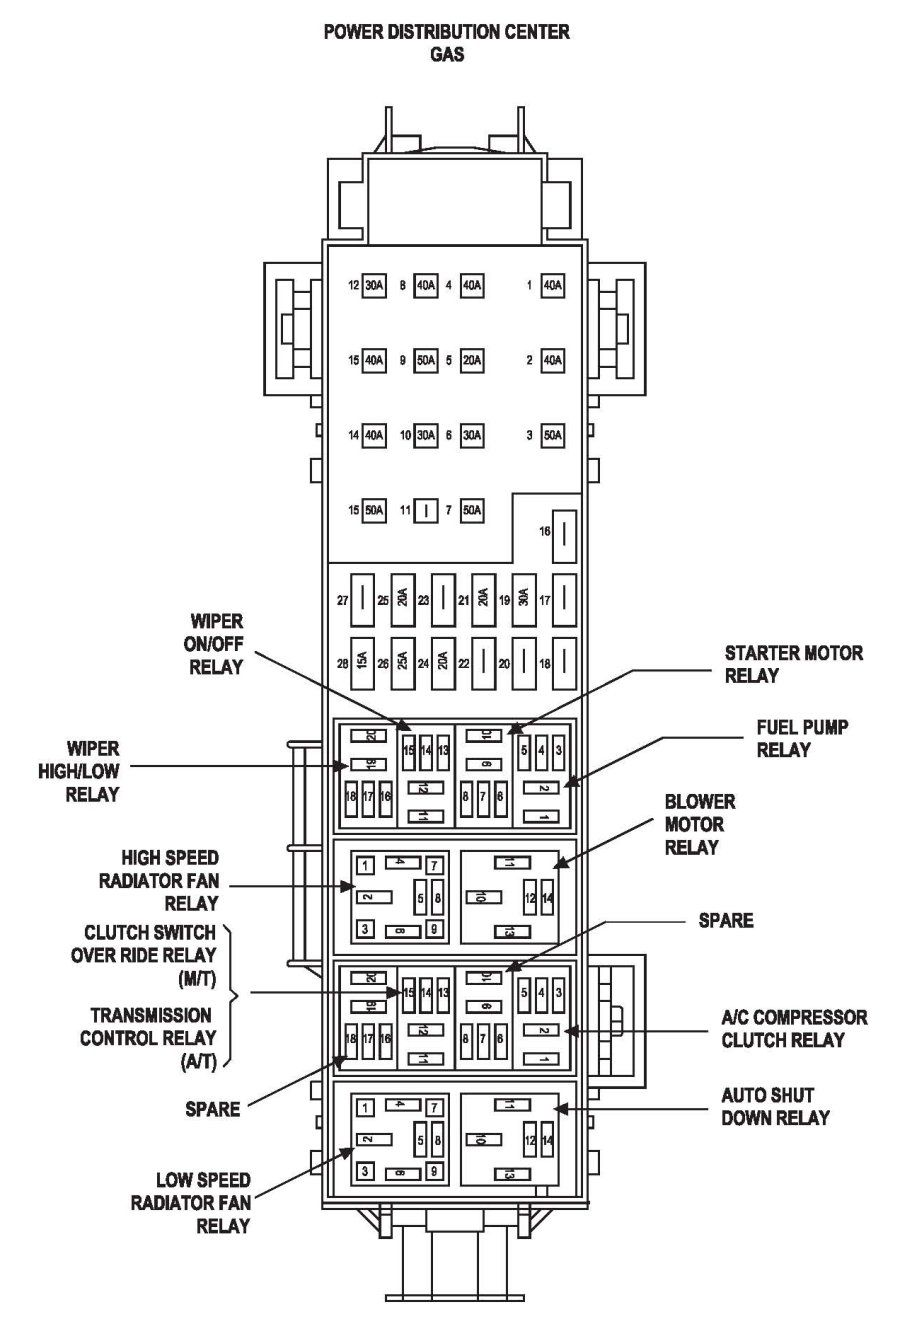 jeep liberty fuse box diagram image details jeep liberty rh pinterest com fuse box diagram 2003 jeep liberty sport 2003 jeep liberty fuse box location